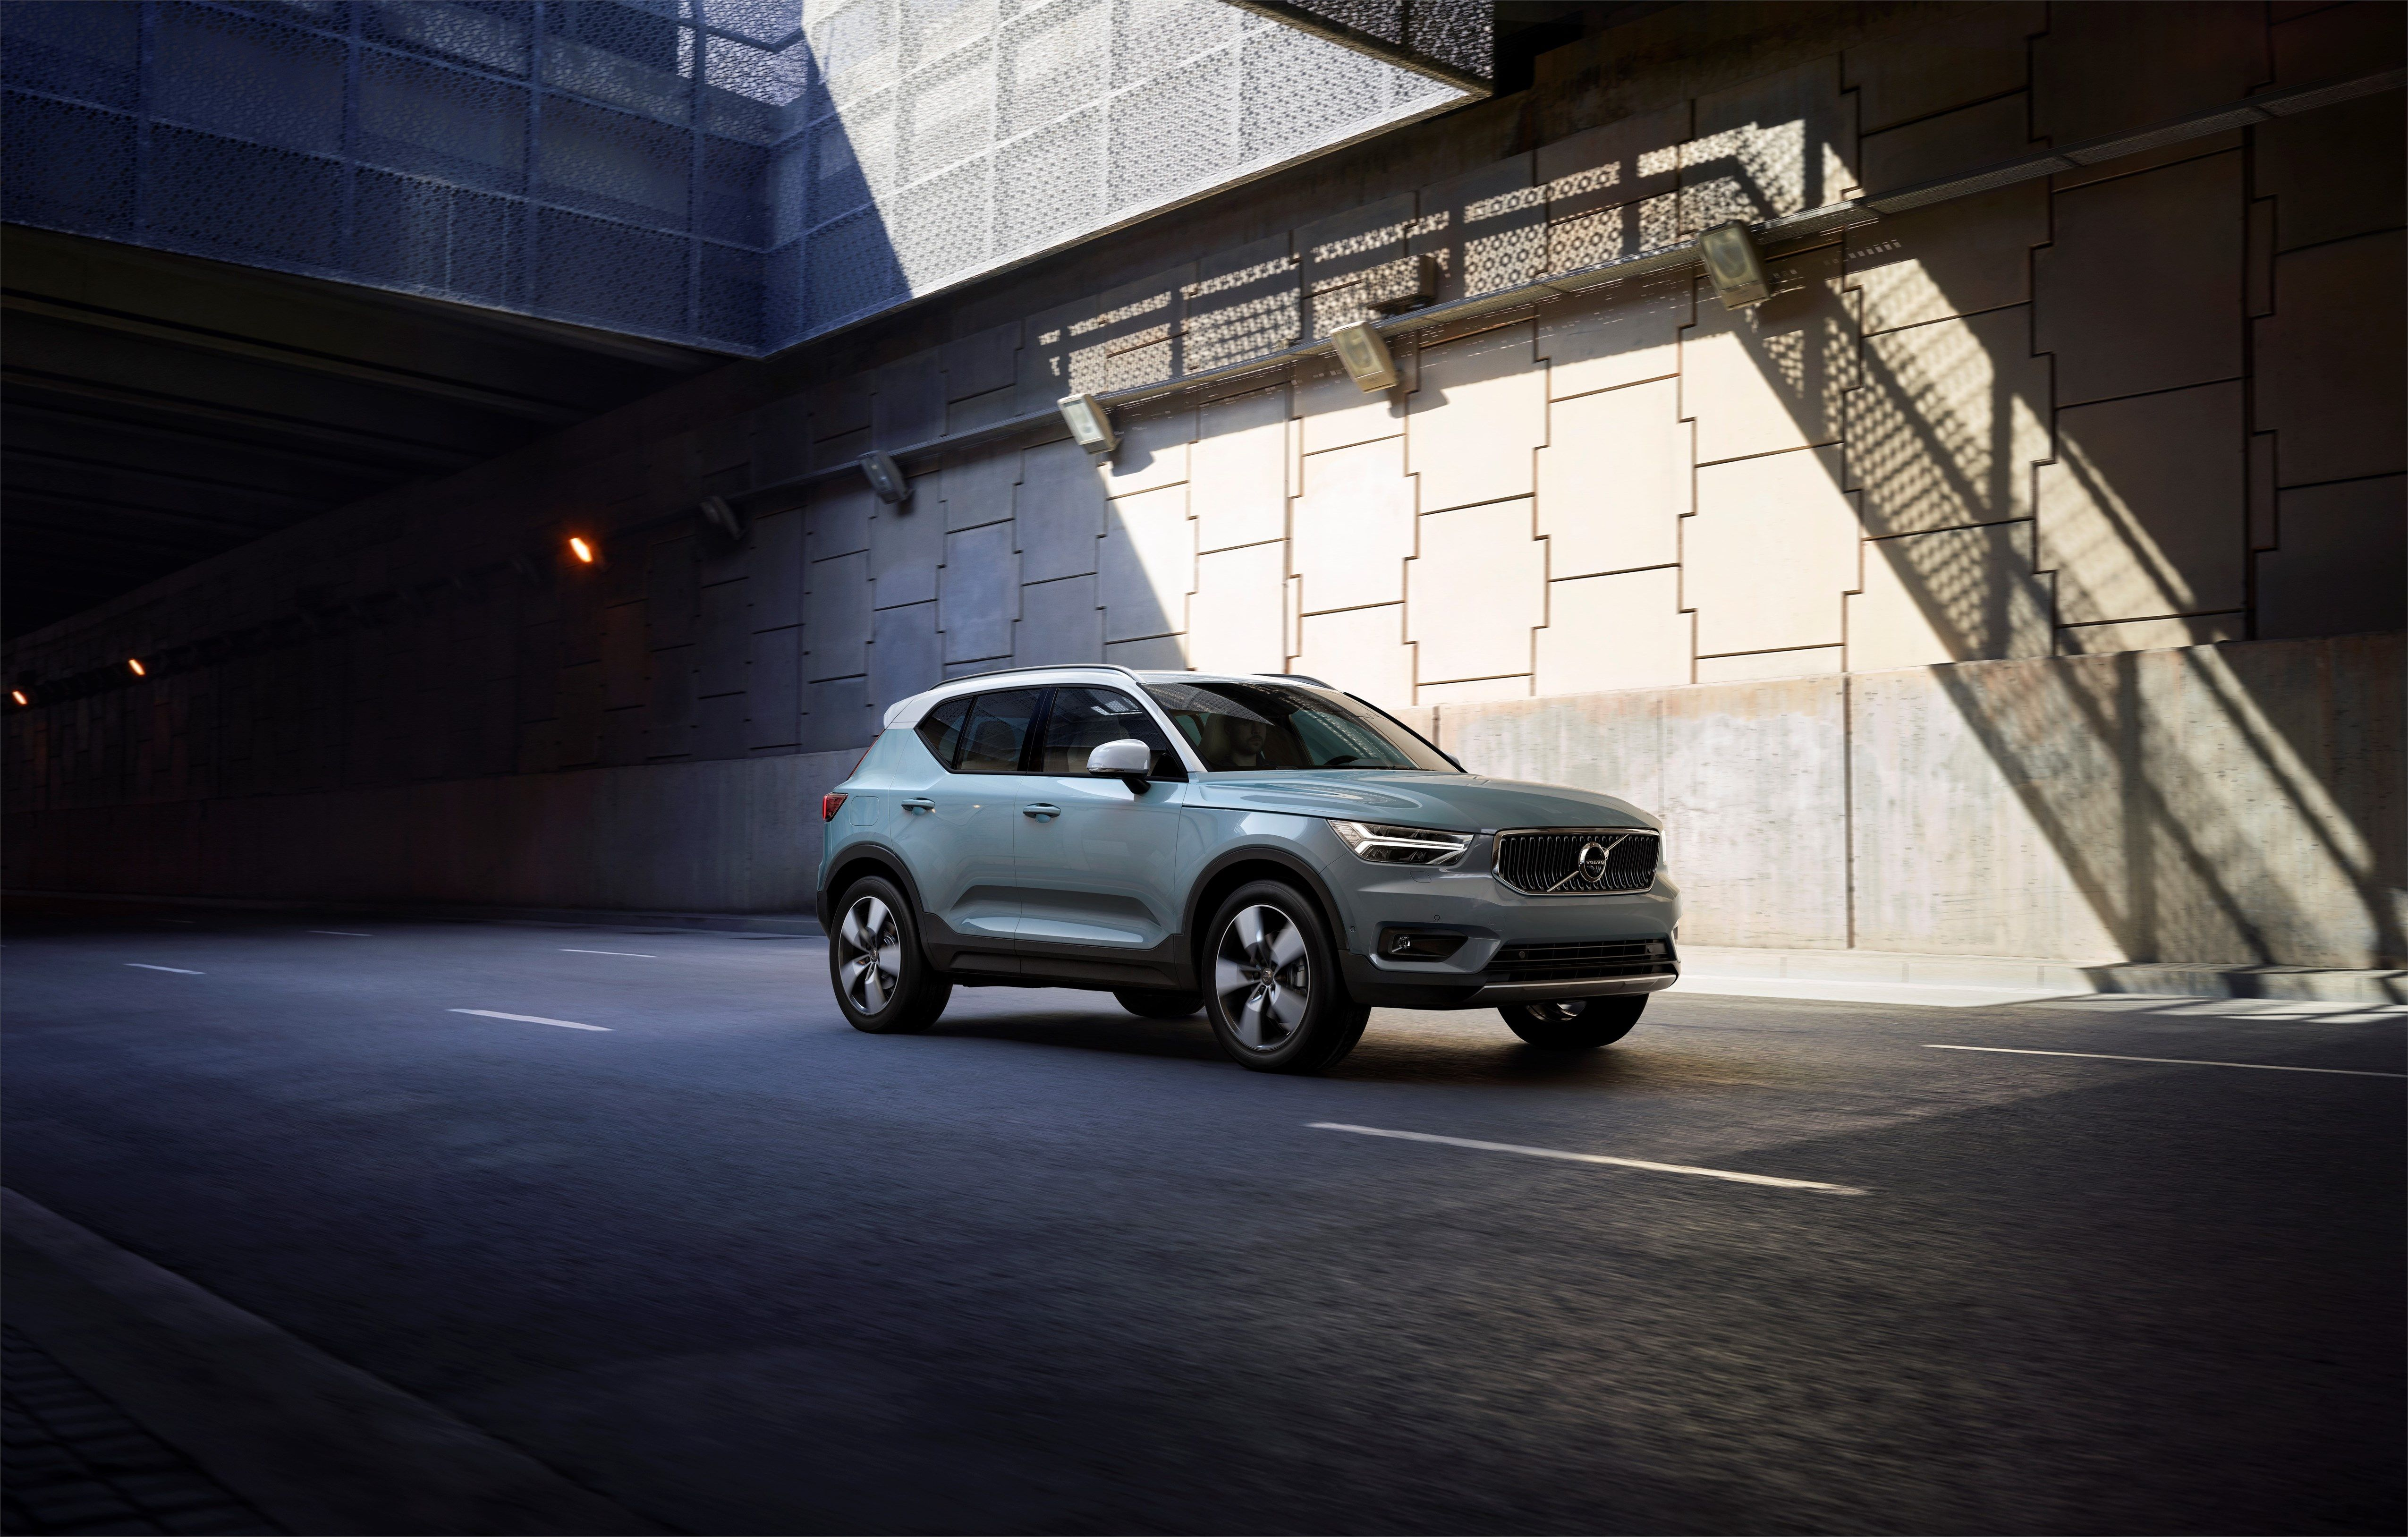 2020 Volvo XC40 Review, Pricing, and Specs